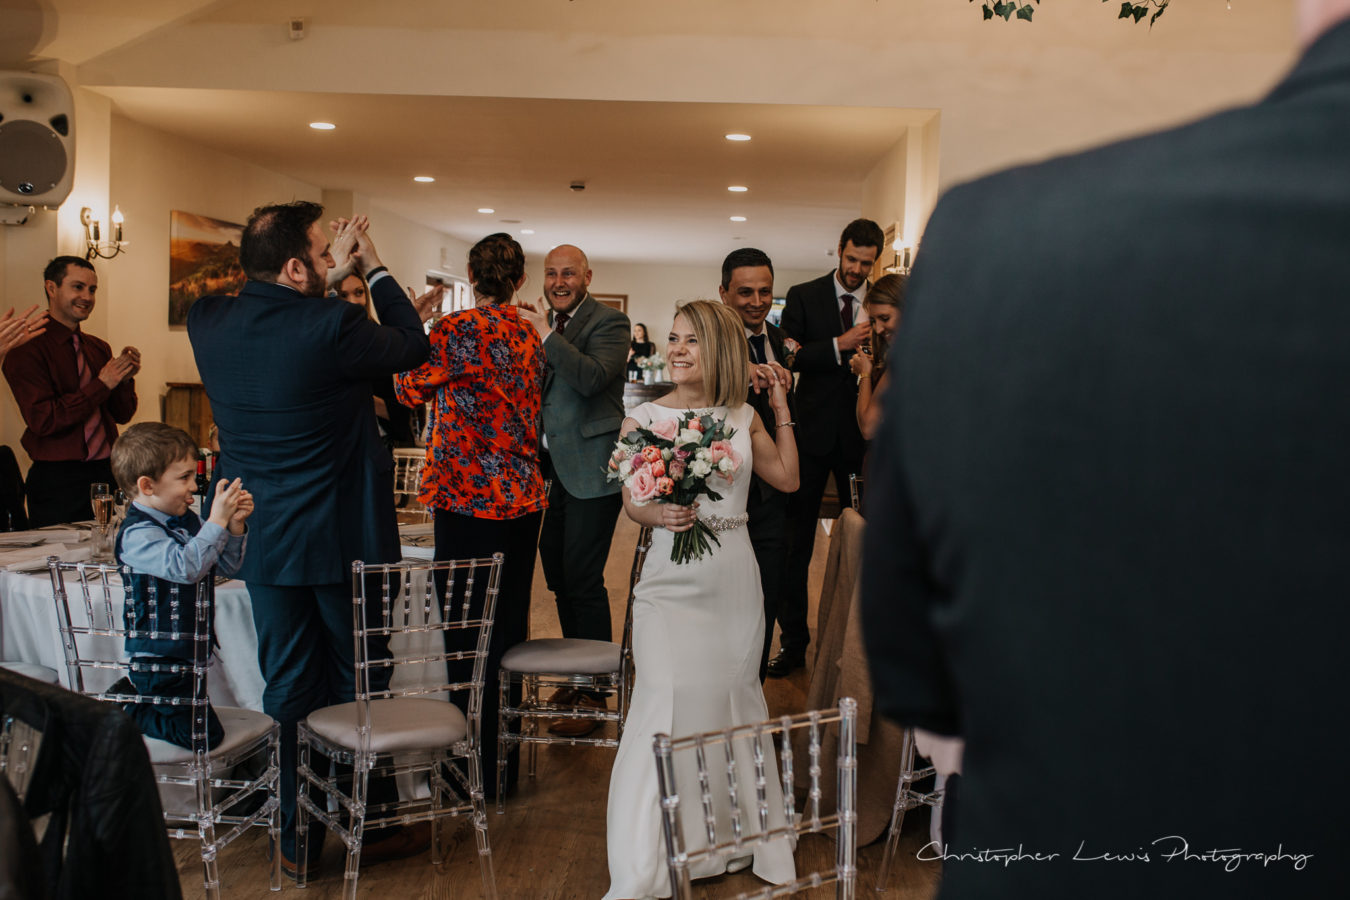 Thief-Hall-Wedding-Christopher-Lewis-Photography-61